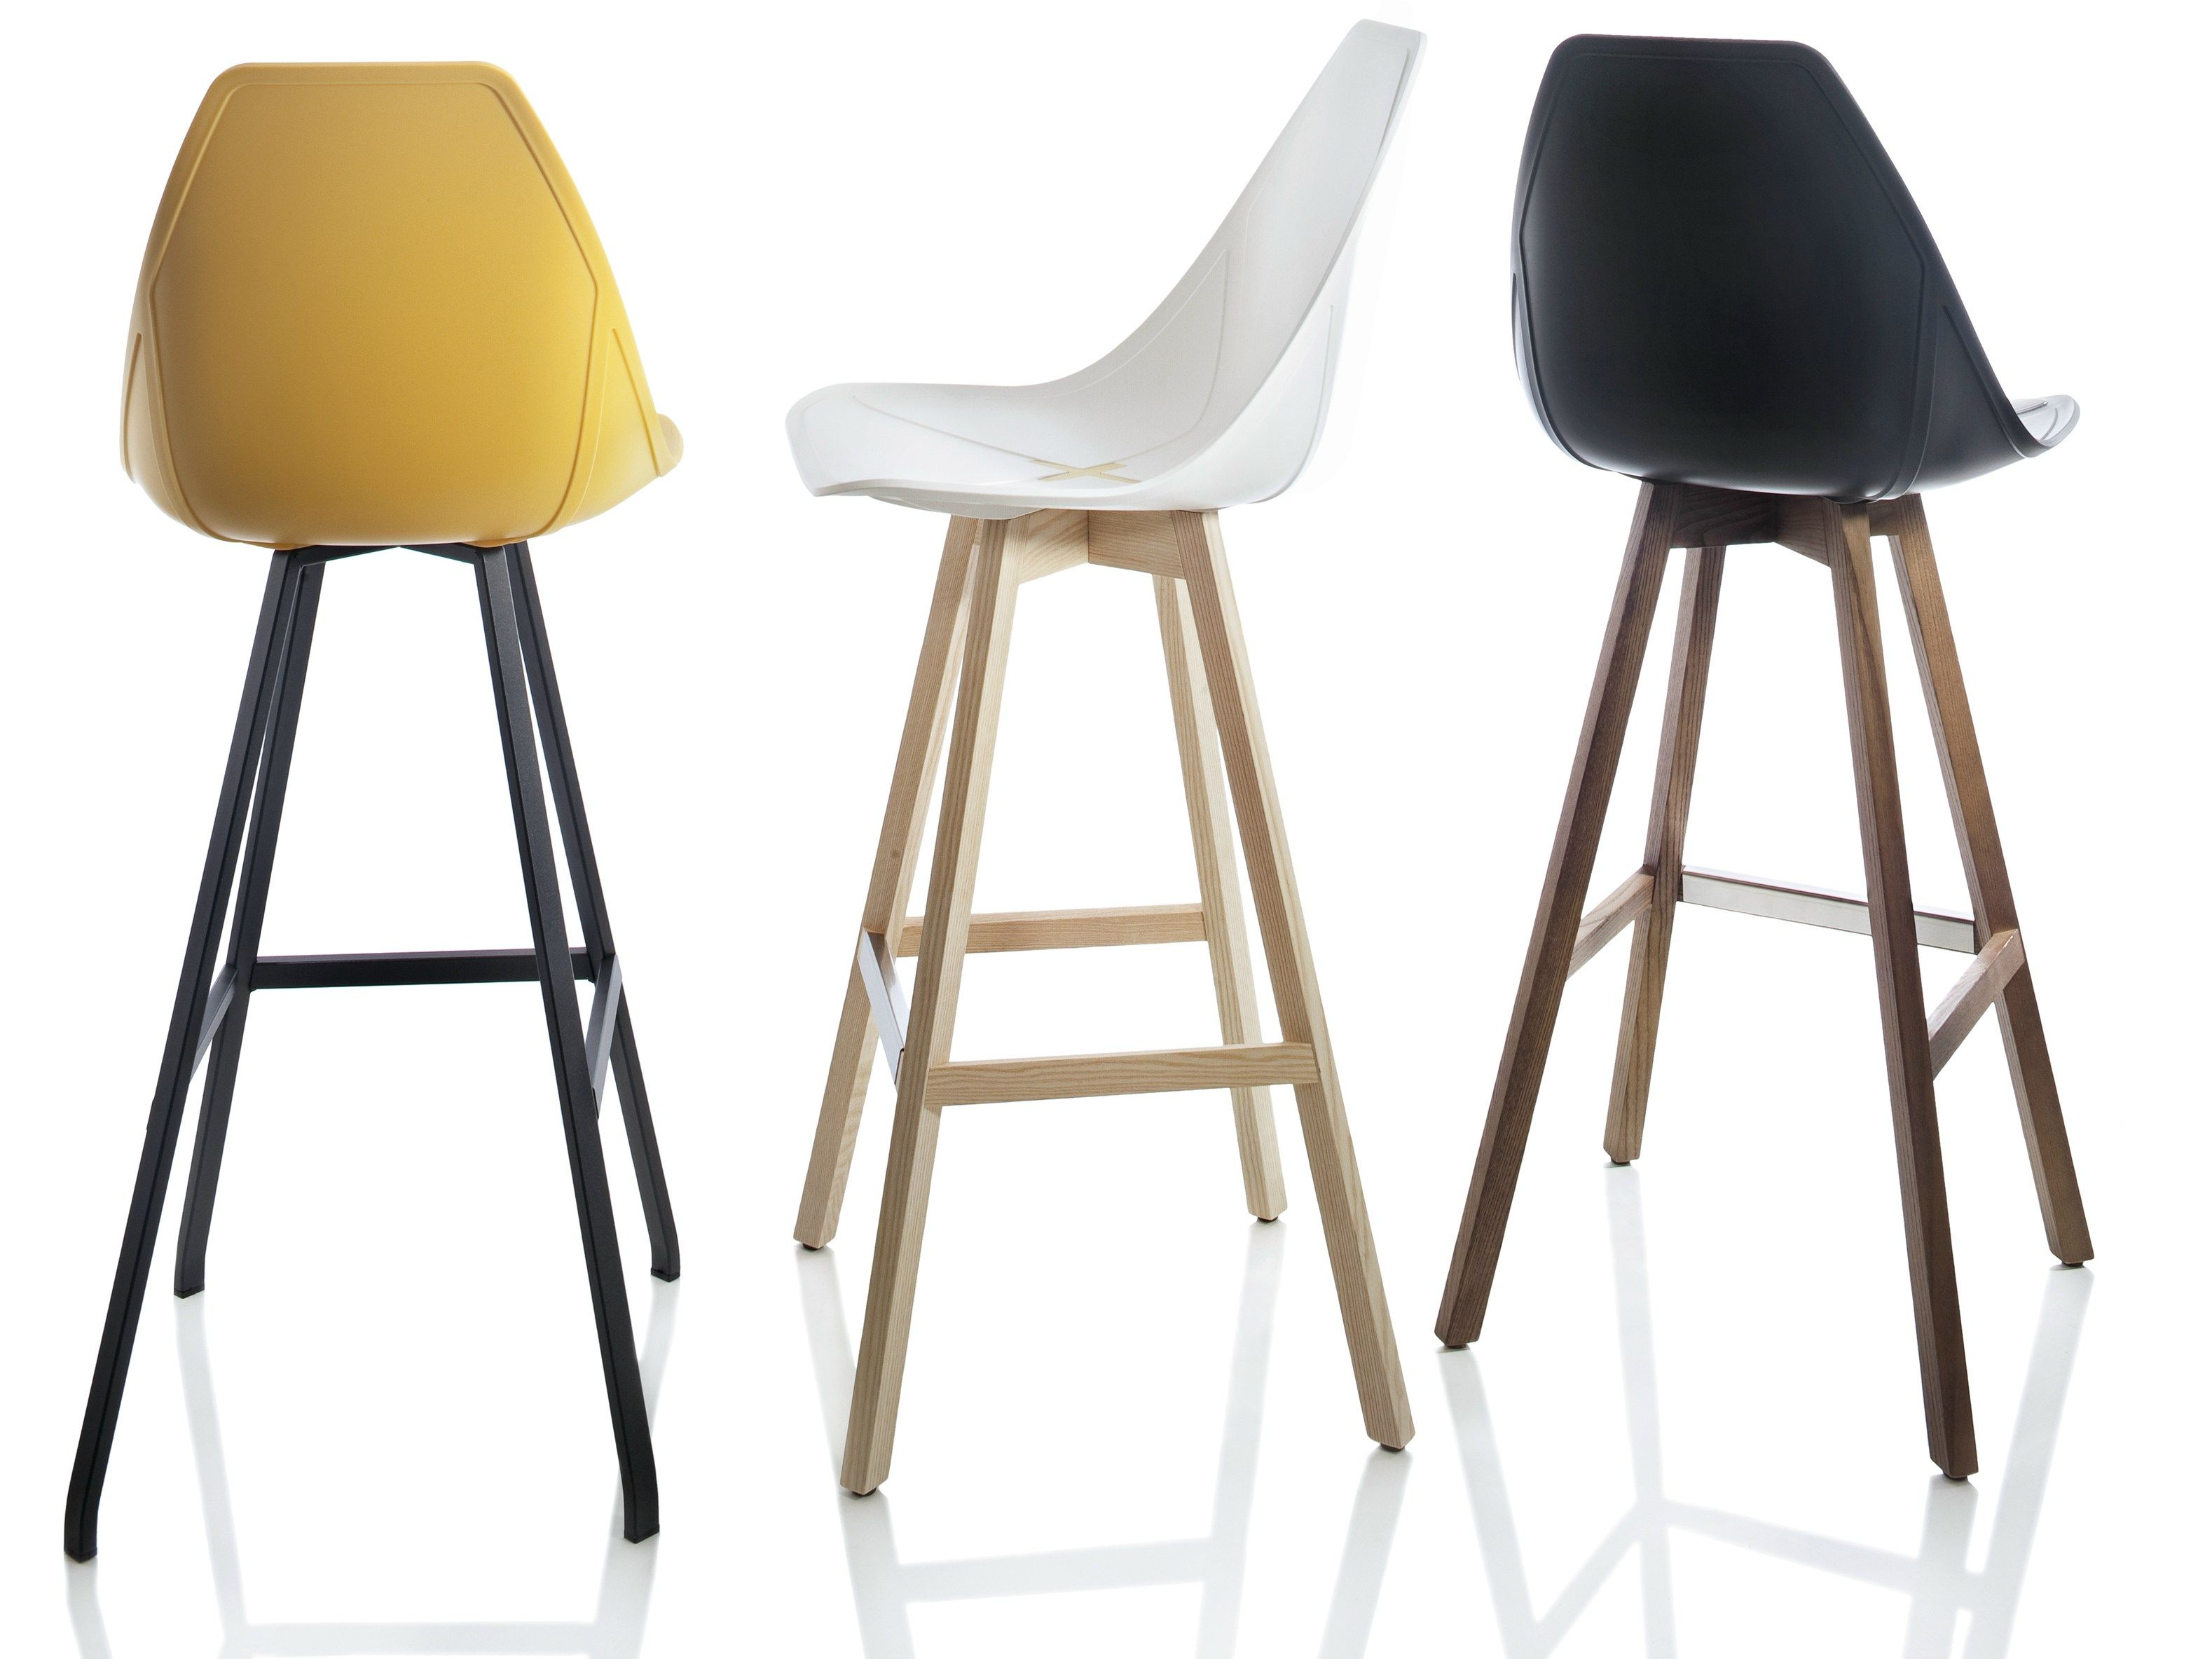 X Stool Stool X Stool Collection By Alma Design Design Mario Mazzer Sillas Taburete Mesa Alta